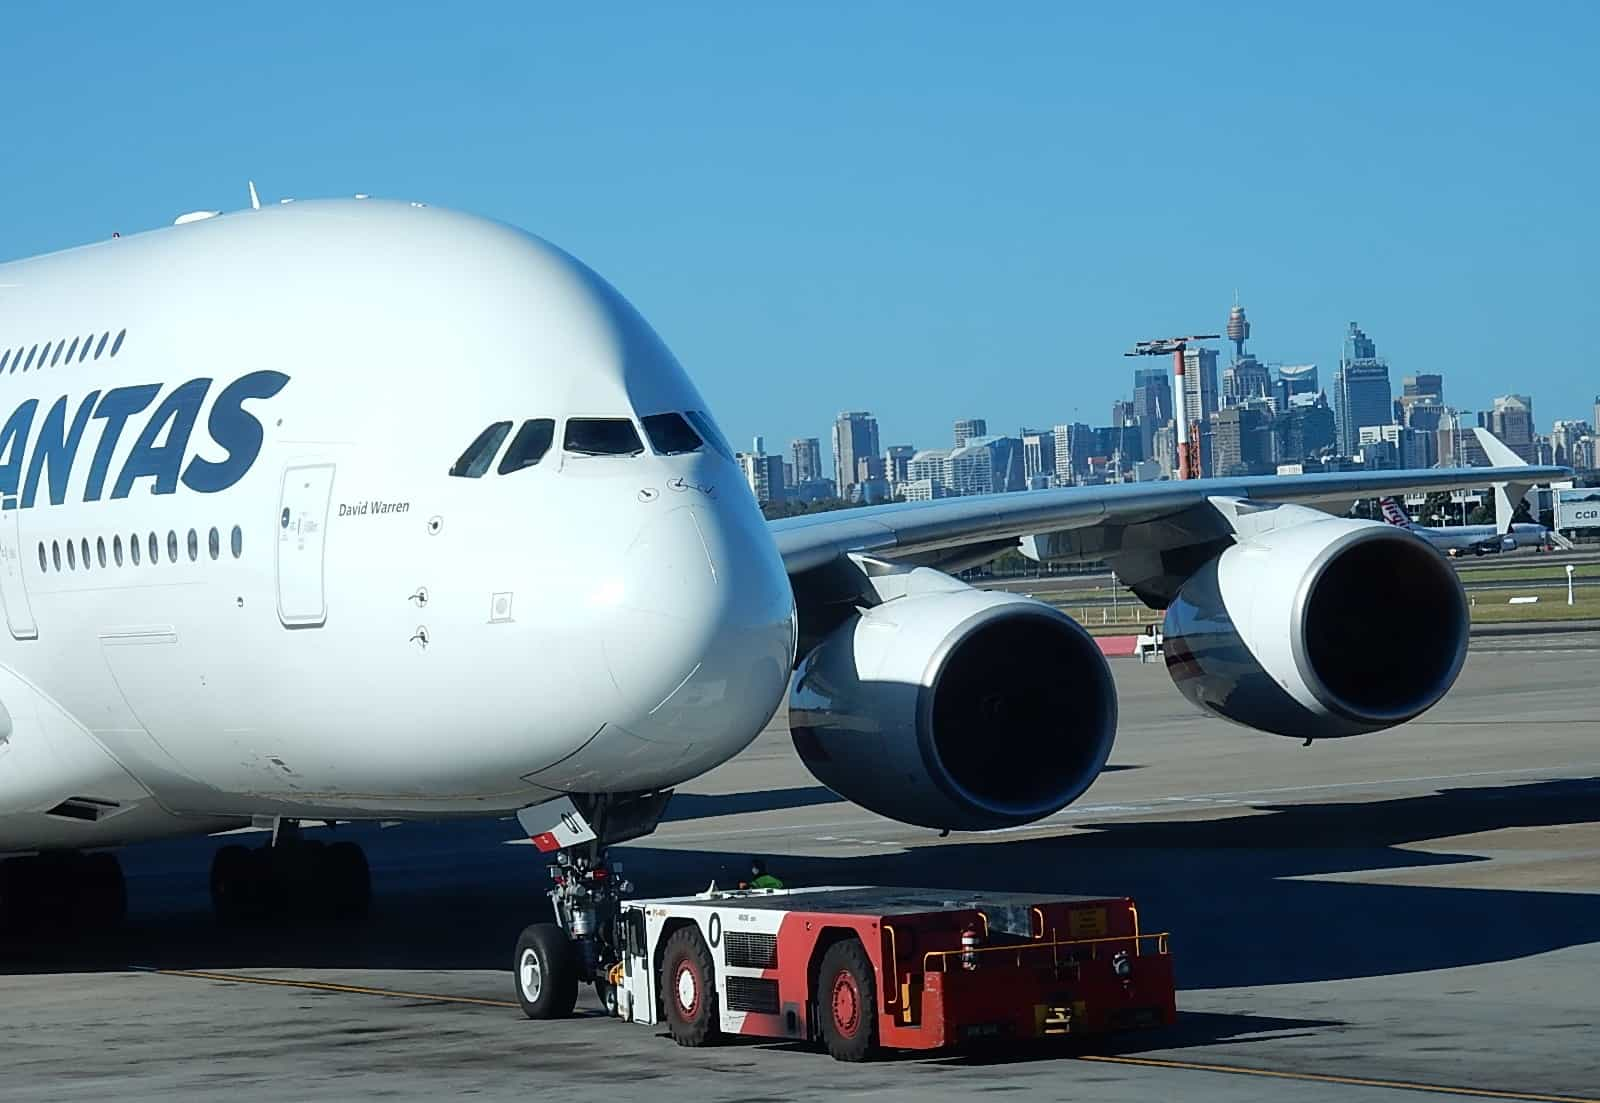 A380 jumbo on runway with city in background